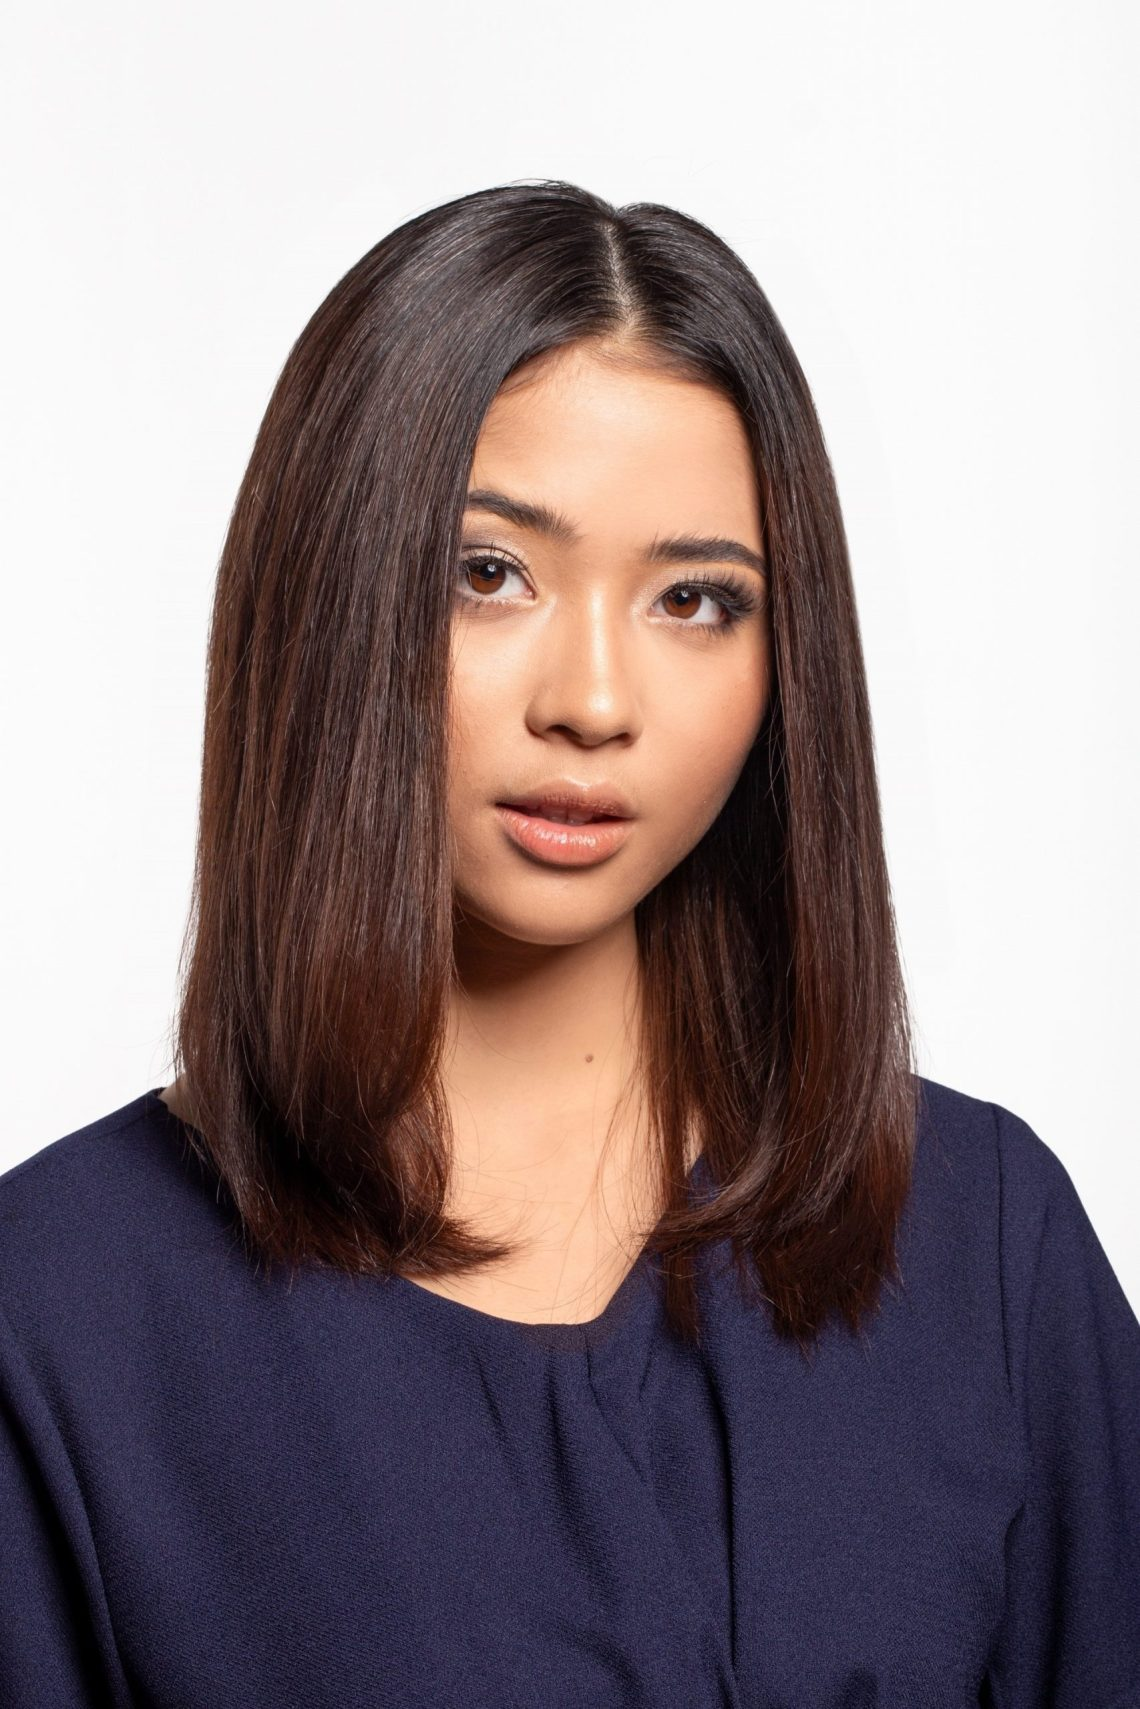 Shoulder Length Hairstyles: 30 Looks For Filipinas! 40+ Adorable Asian Women'S Hairstyles Medium Length